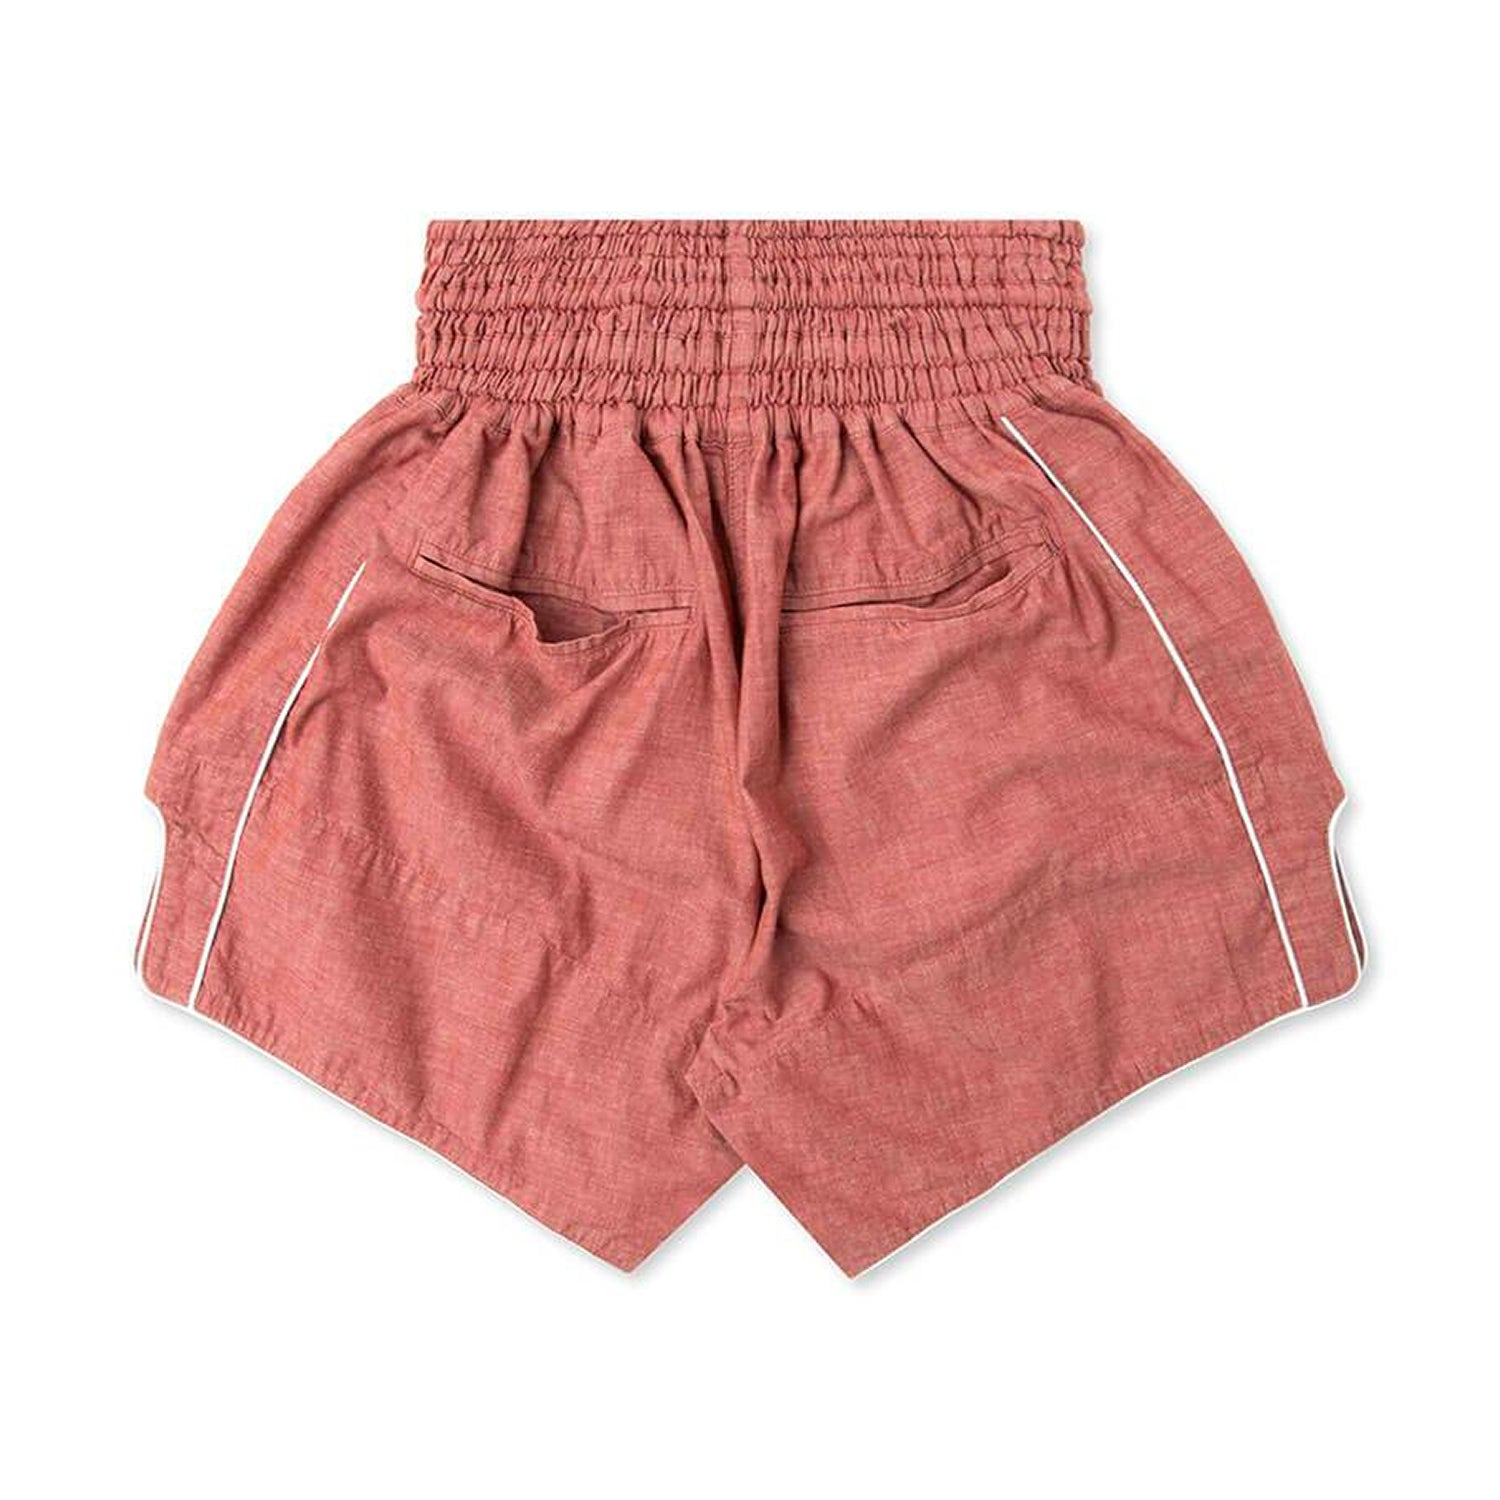 RED CHAMBRAY MUAY THAI SHORTS